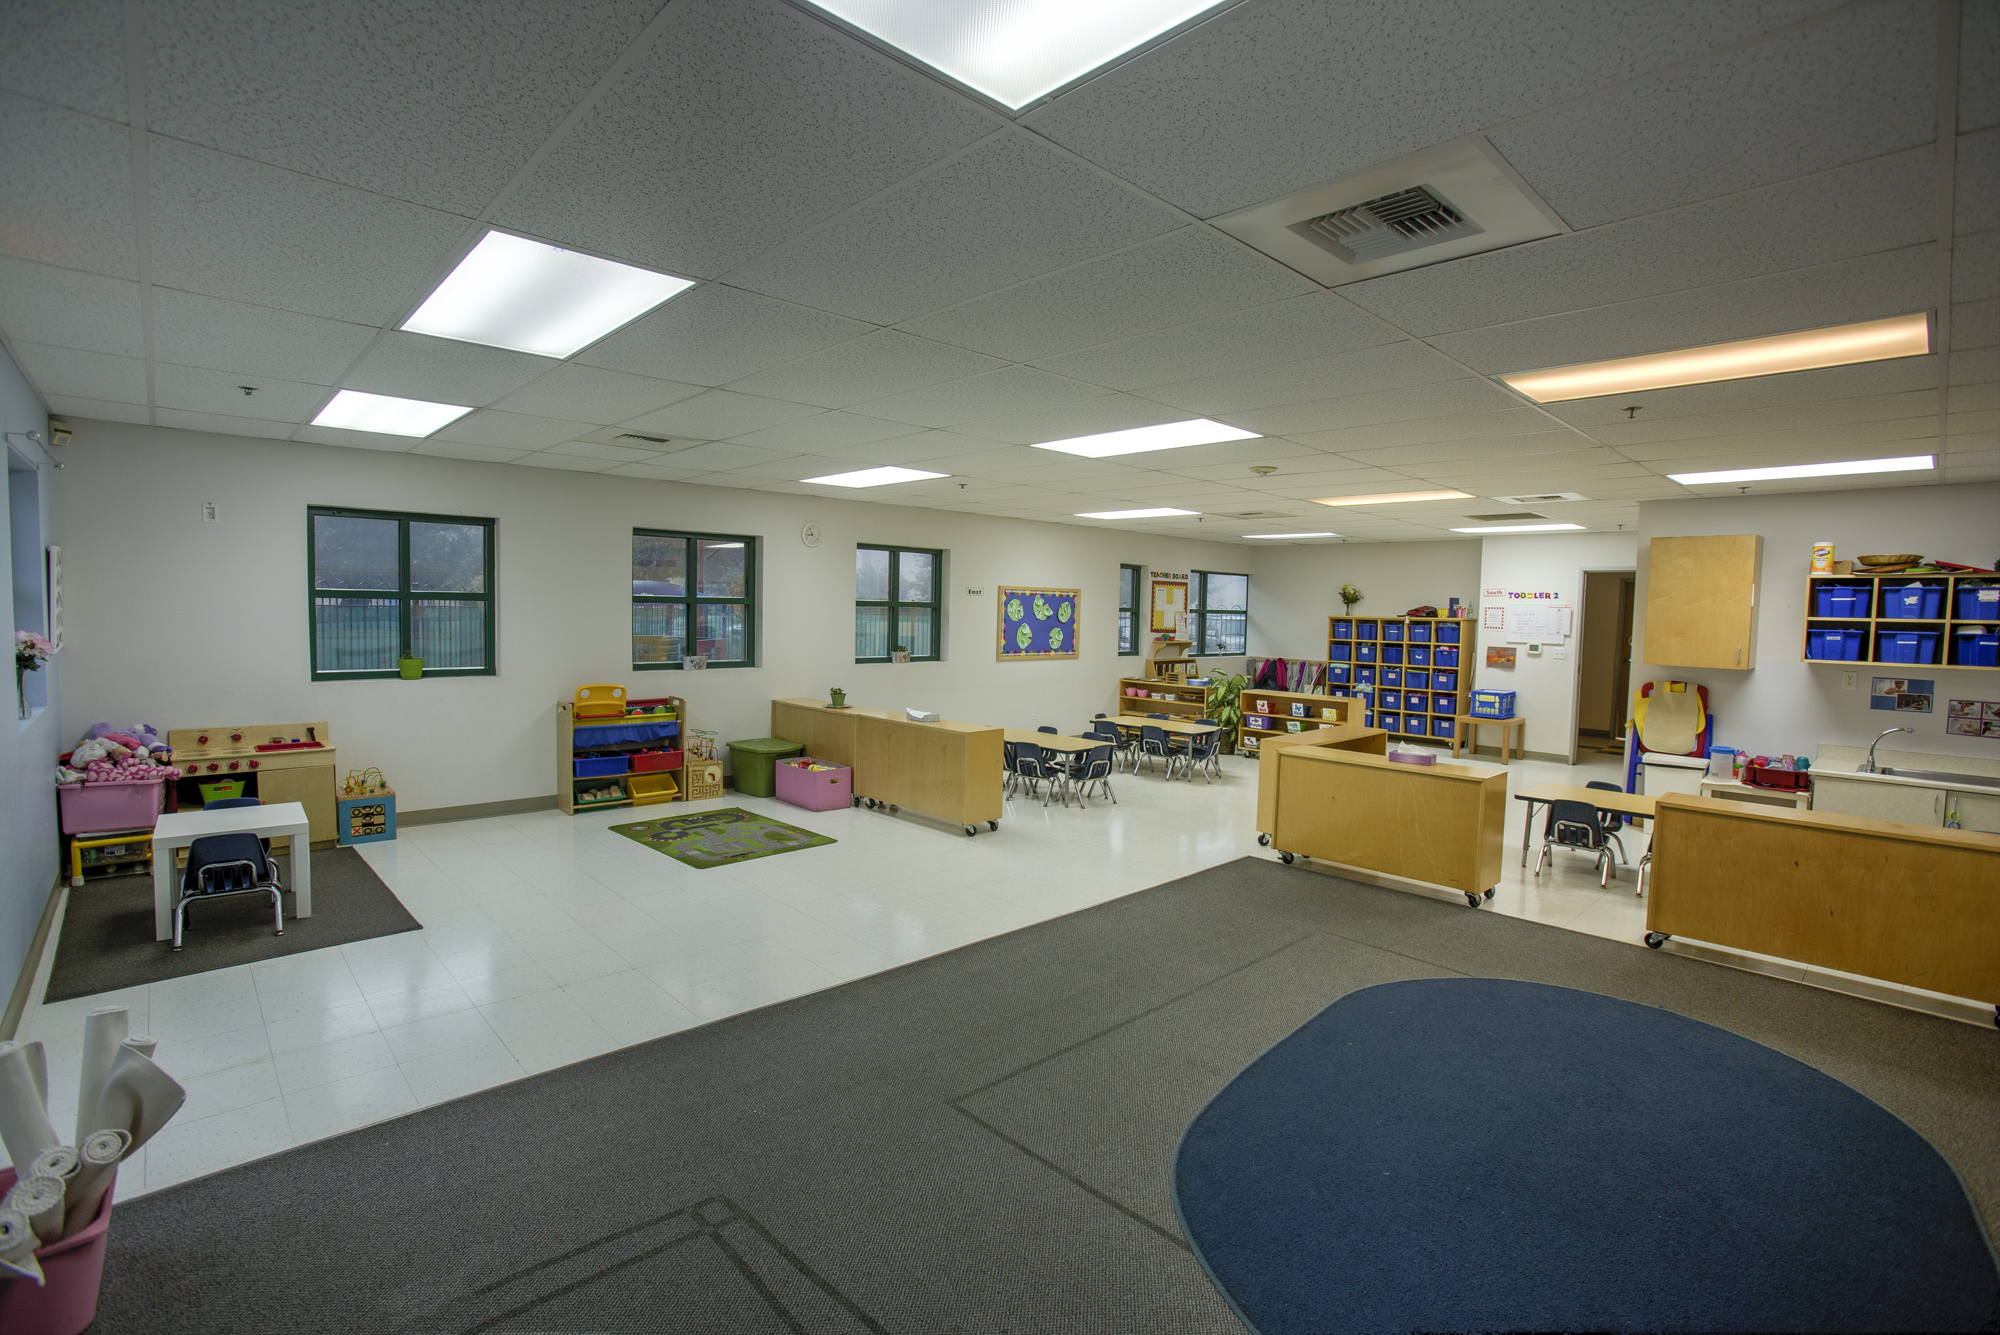 Little-Blossom-Montessori-Preschool-and-Daycare-Services-Sacramento-Natomas_01.jpg